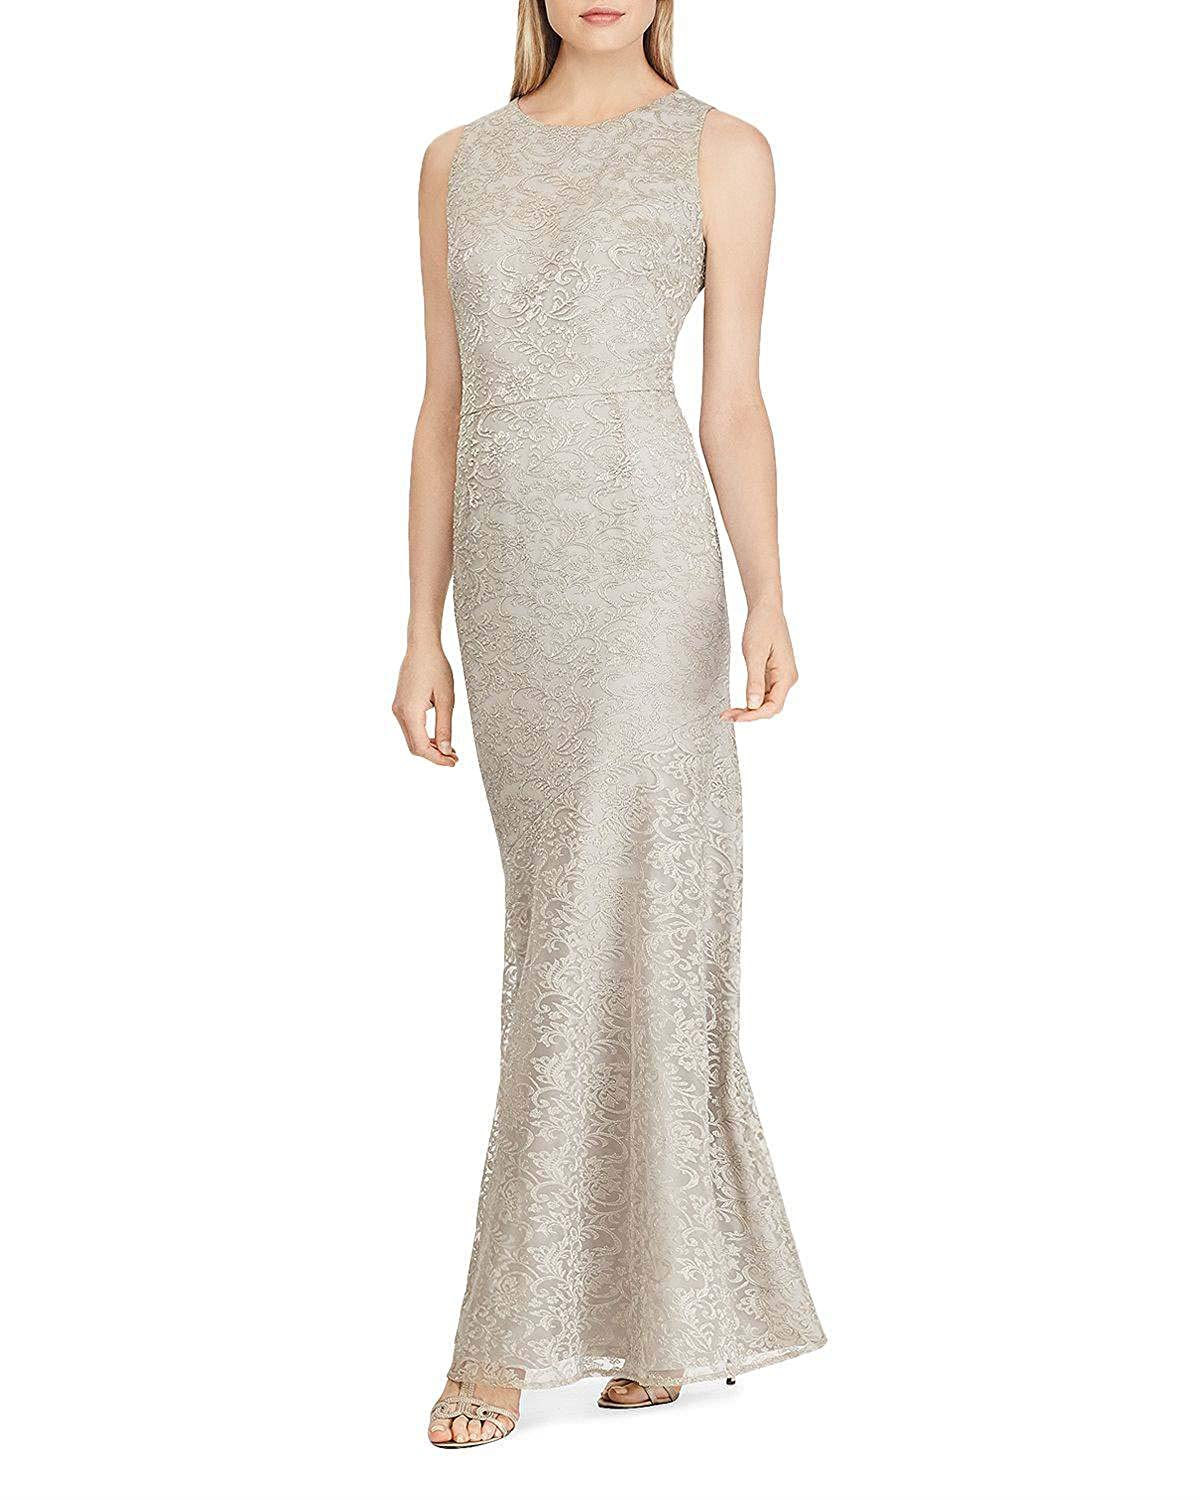 Beige Wanshaqin Women's Embroidered Mesh Gown for Evening Party Sexy Bias Cut Formal Wedding Bridesmaid Dress